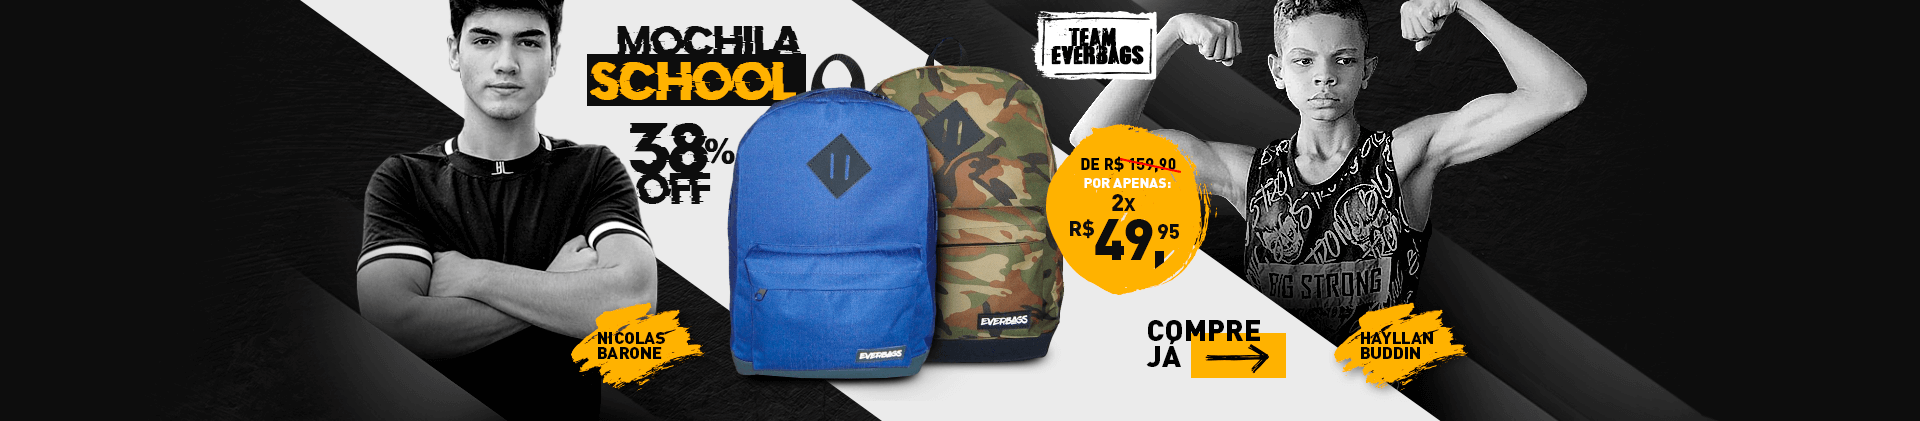 Mochila School Everbags